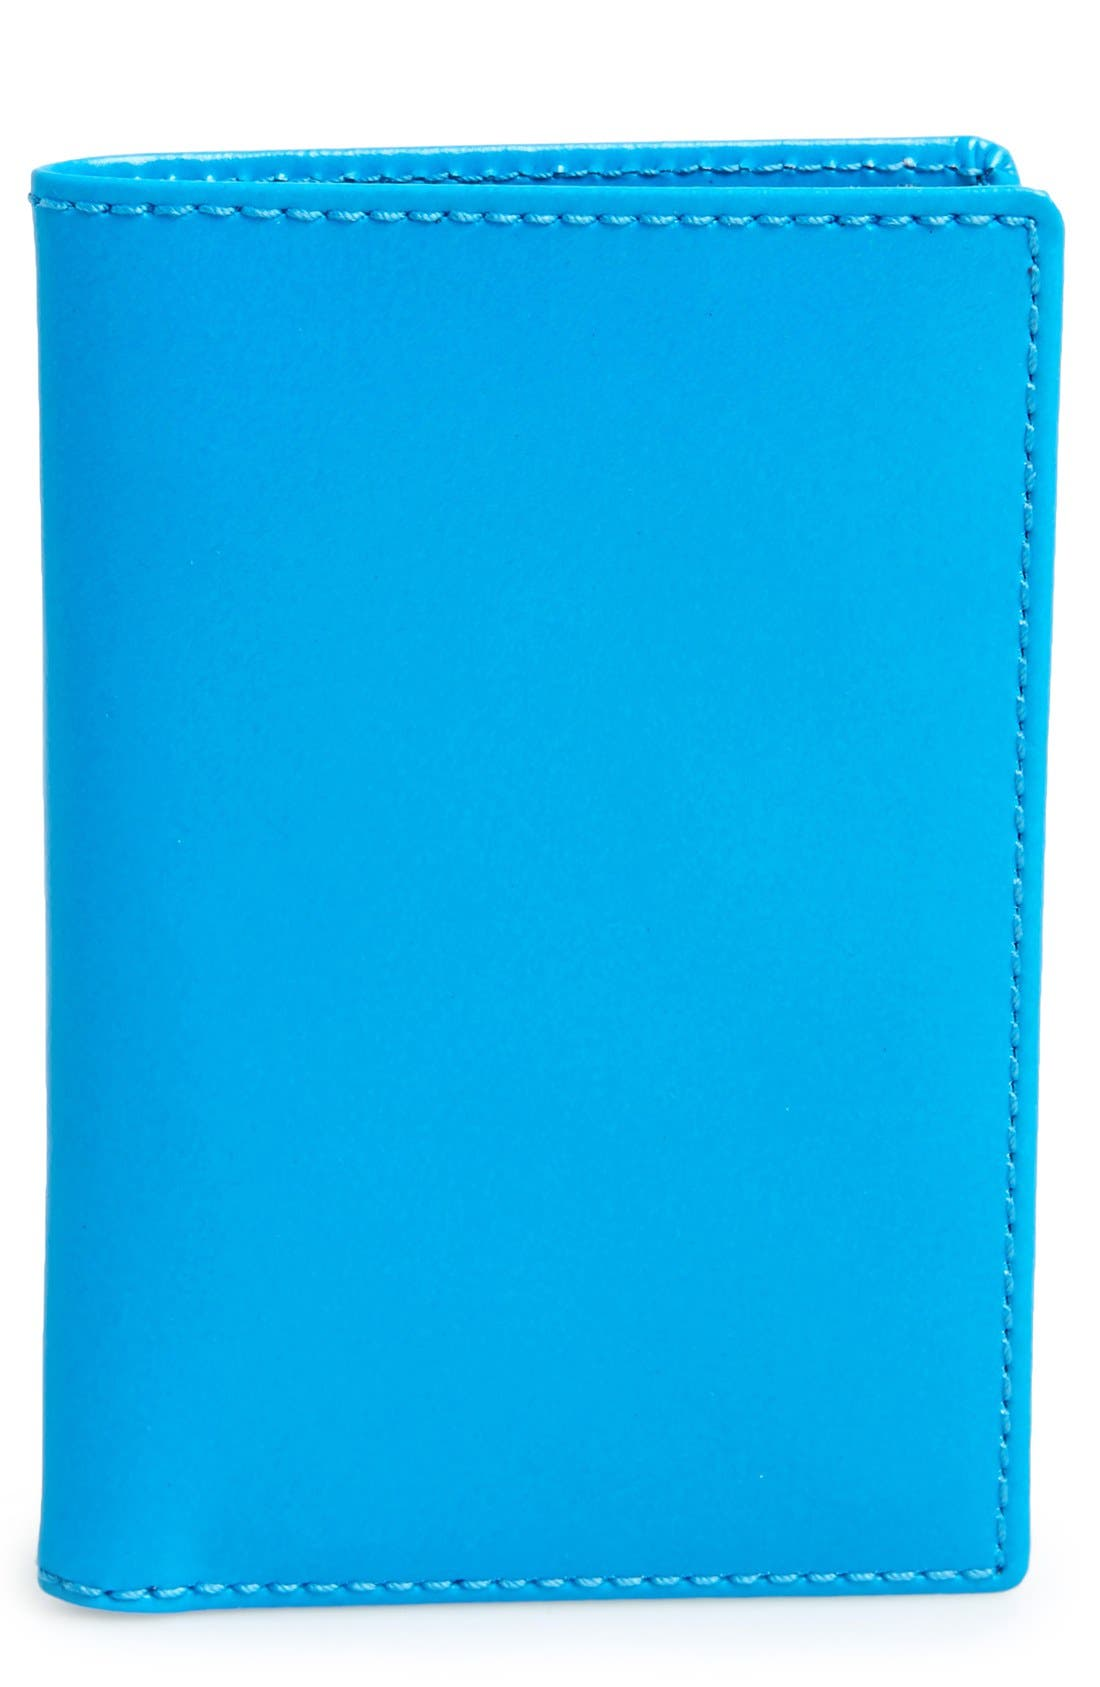 Alternate Image 1 Selected - Comme des Garçons 'Super Fluo' Leather Card Case